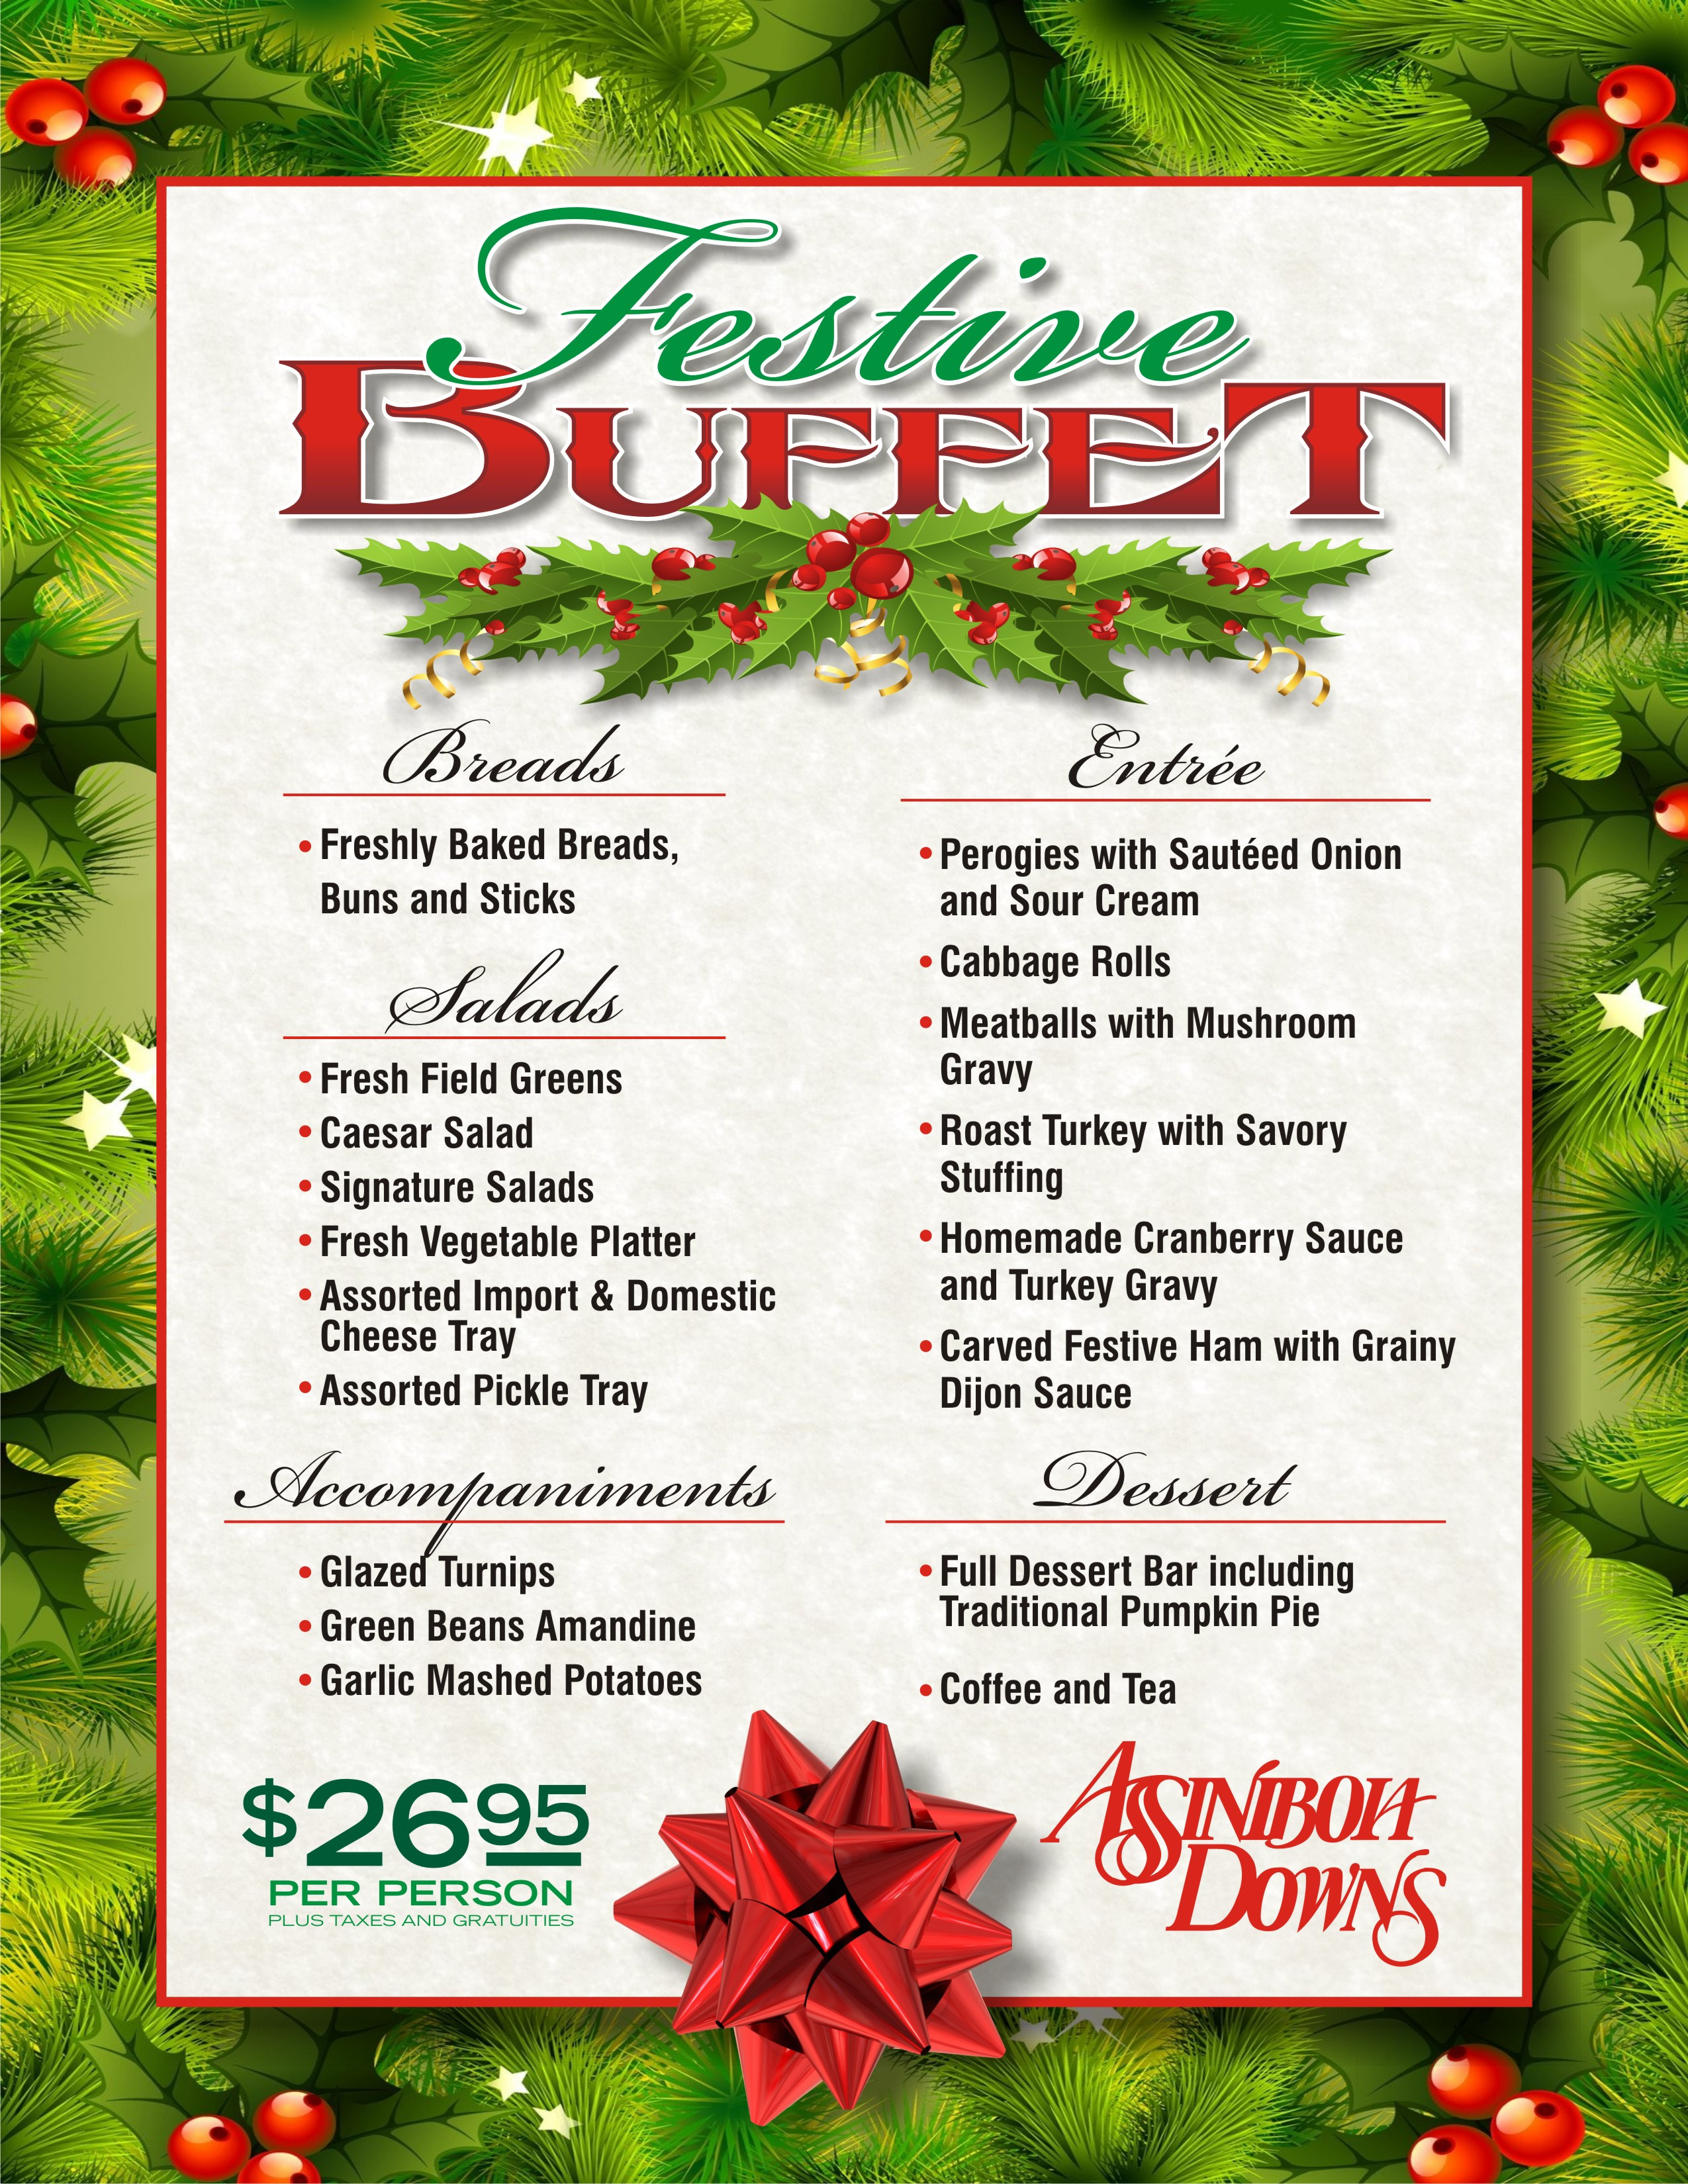 Assiniboia Downs Buffet